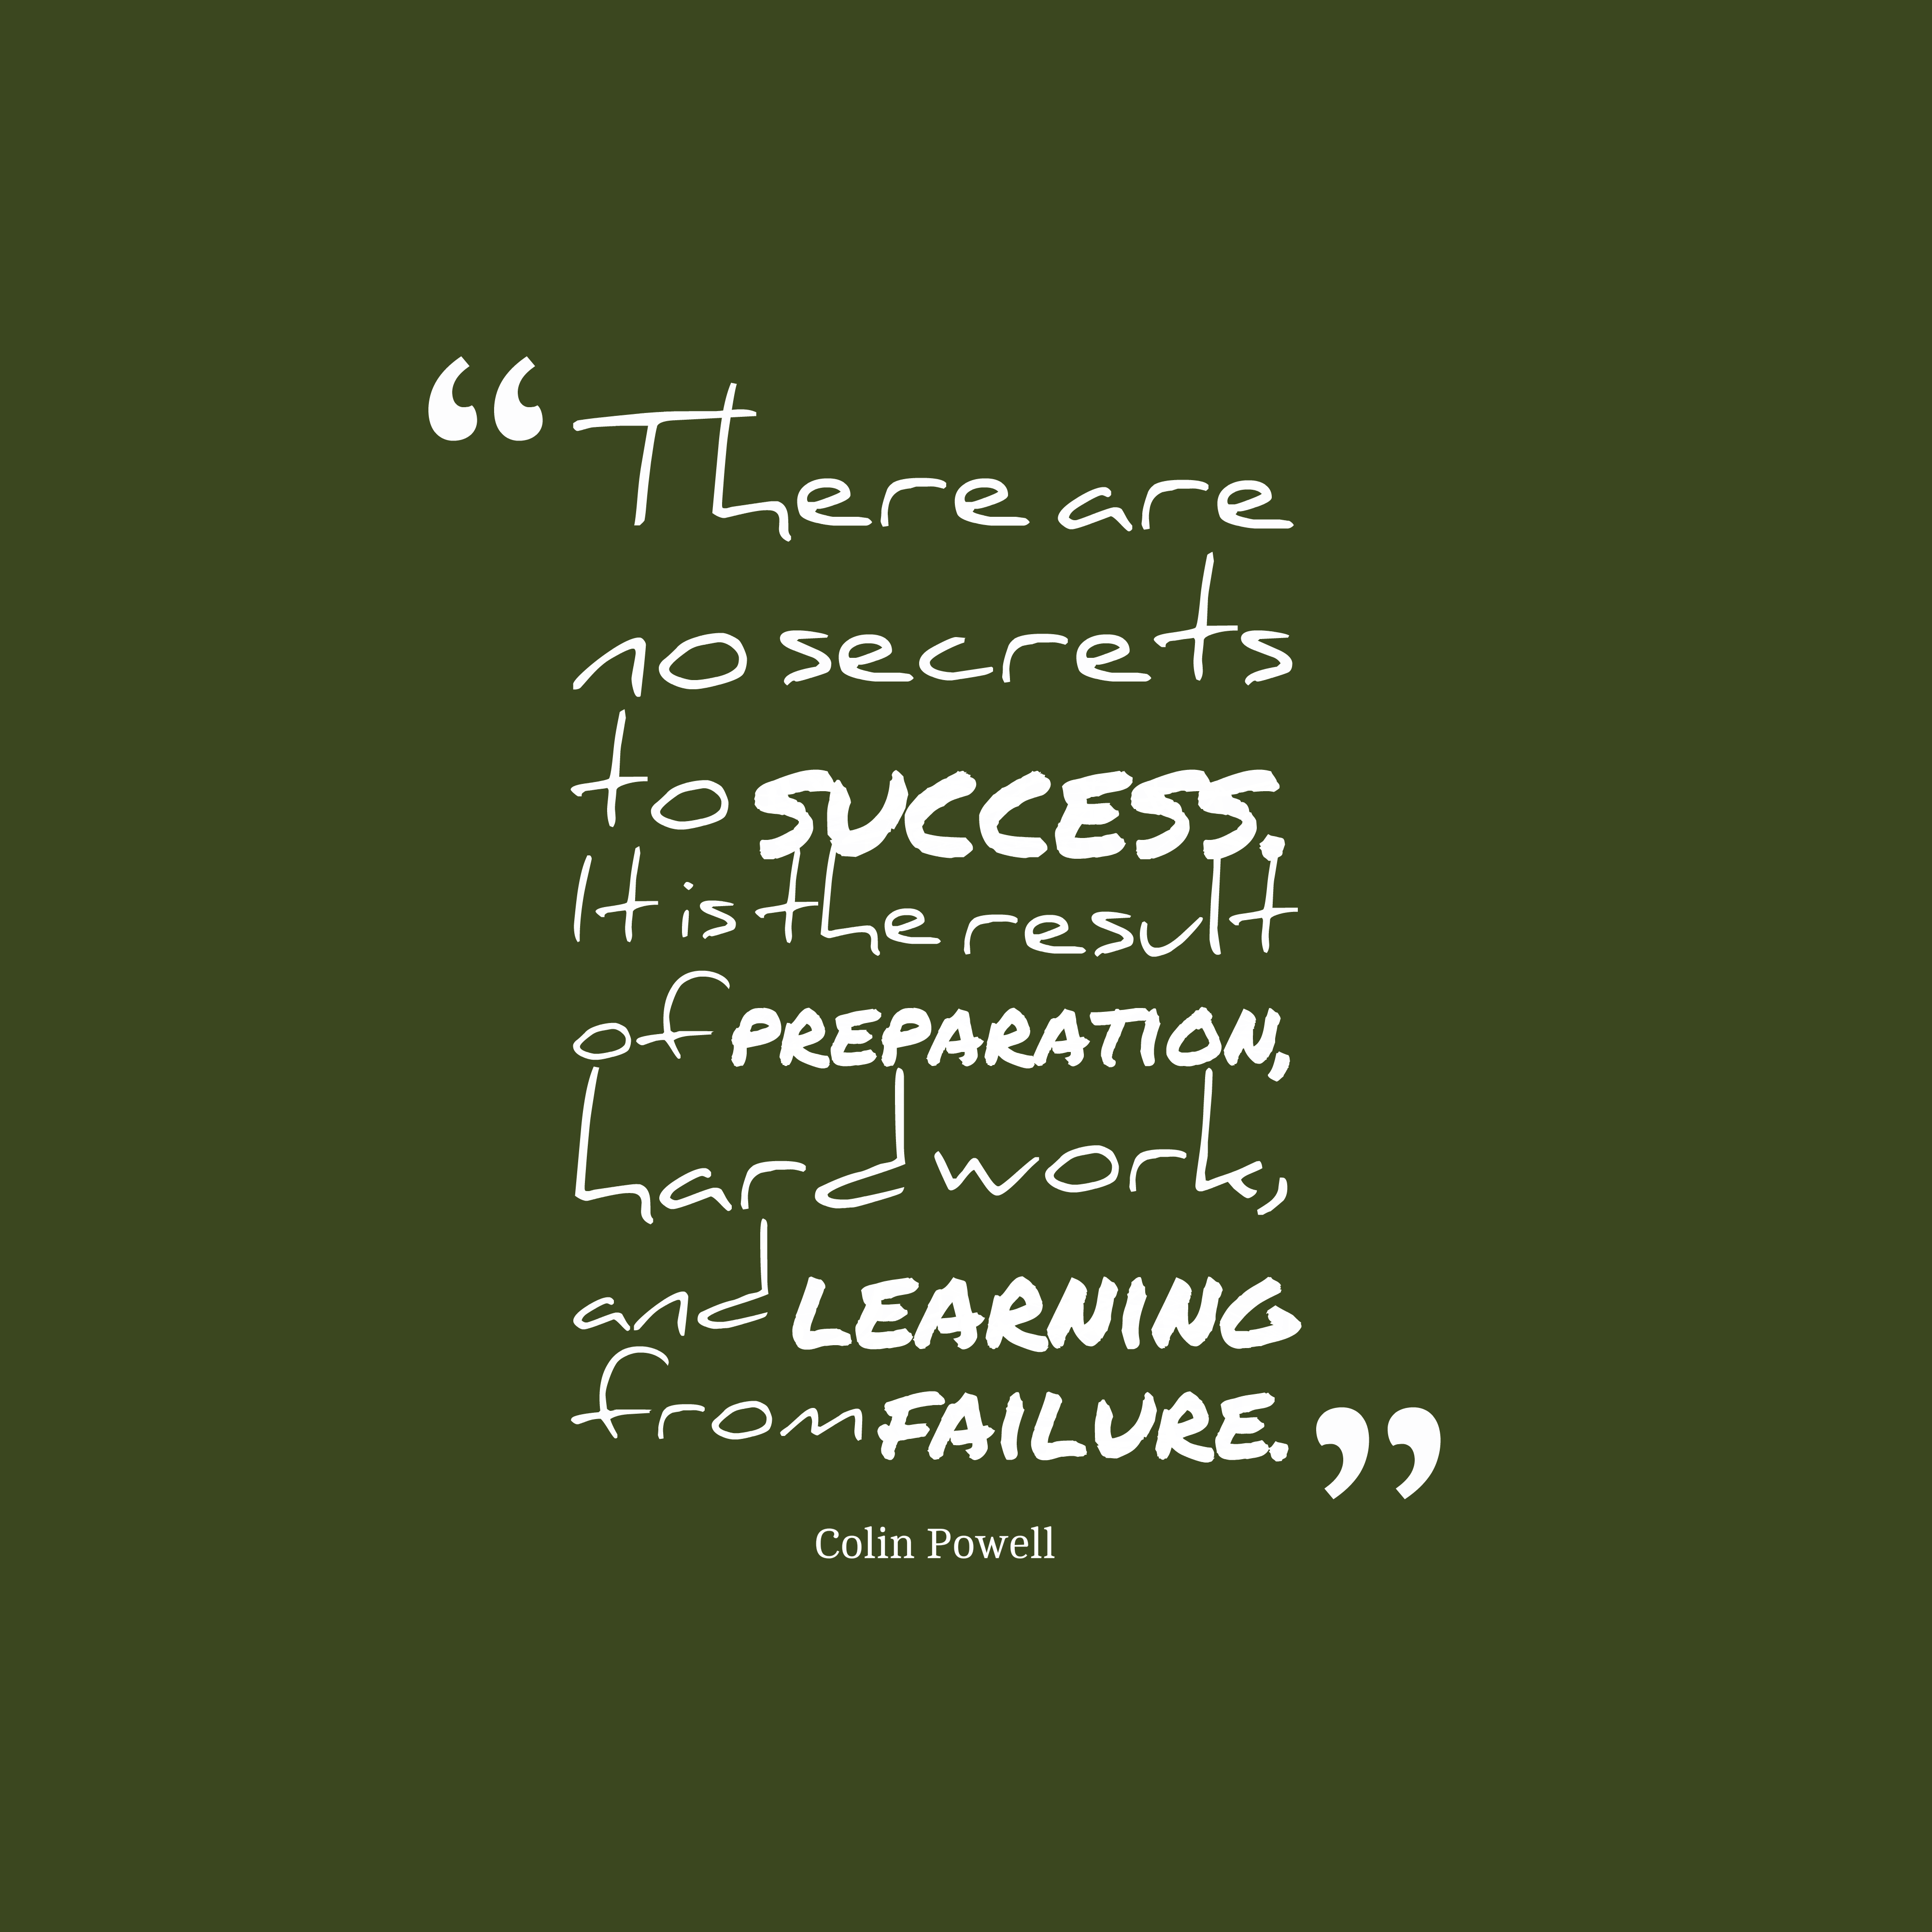 Quotes About Success: Learning From Failure Quotes. QuotesGram